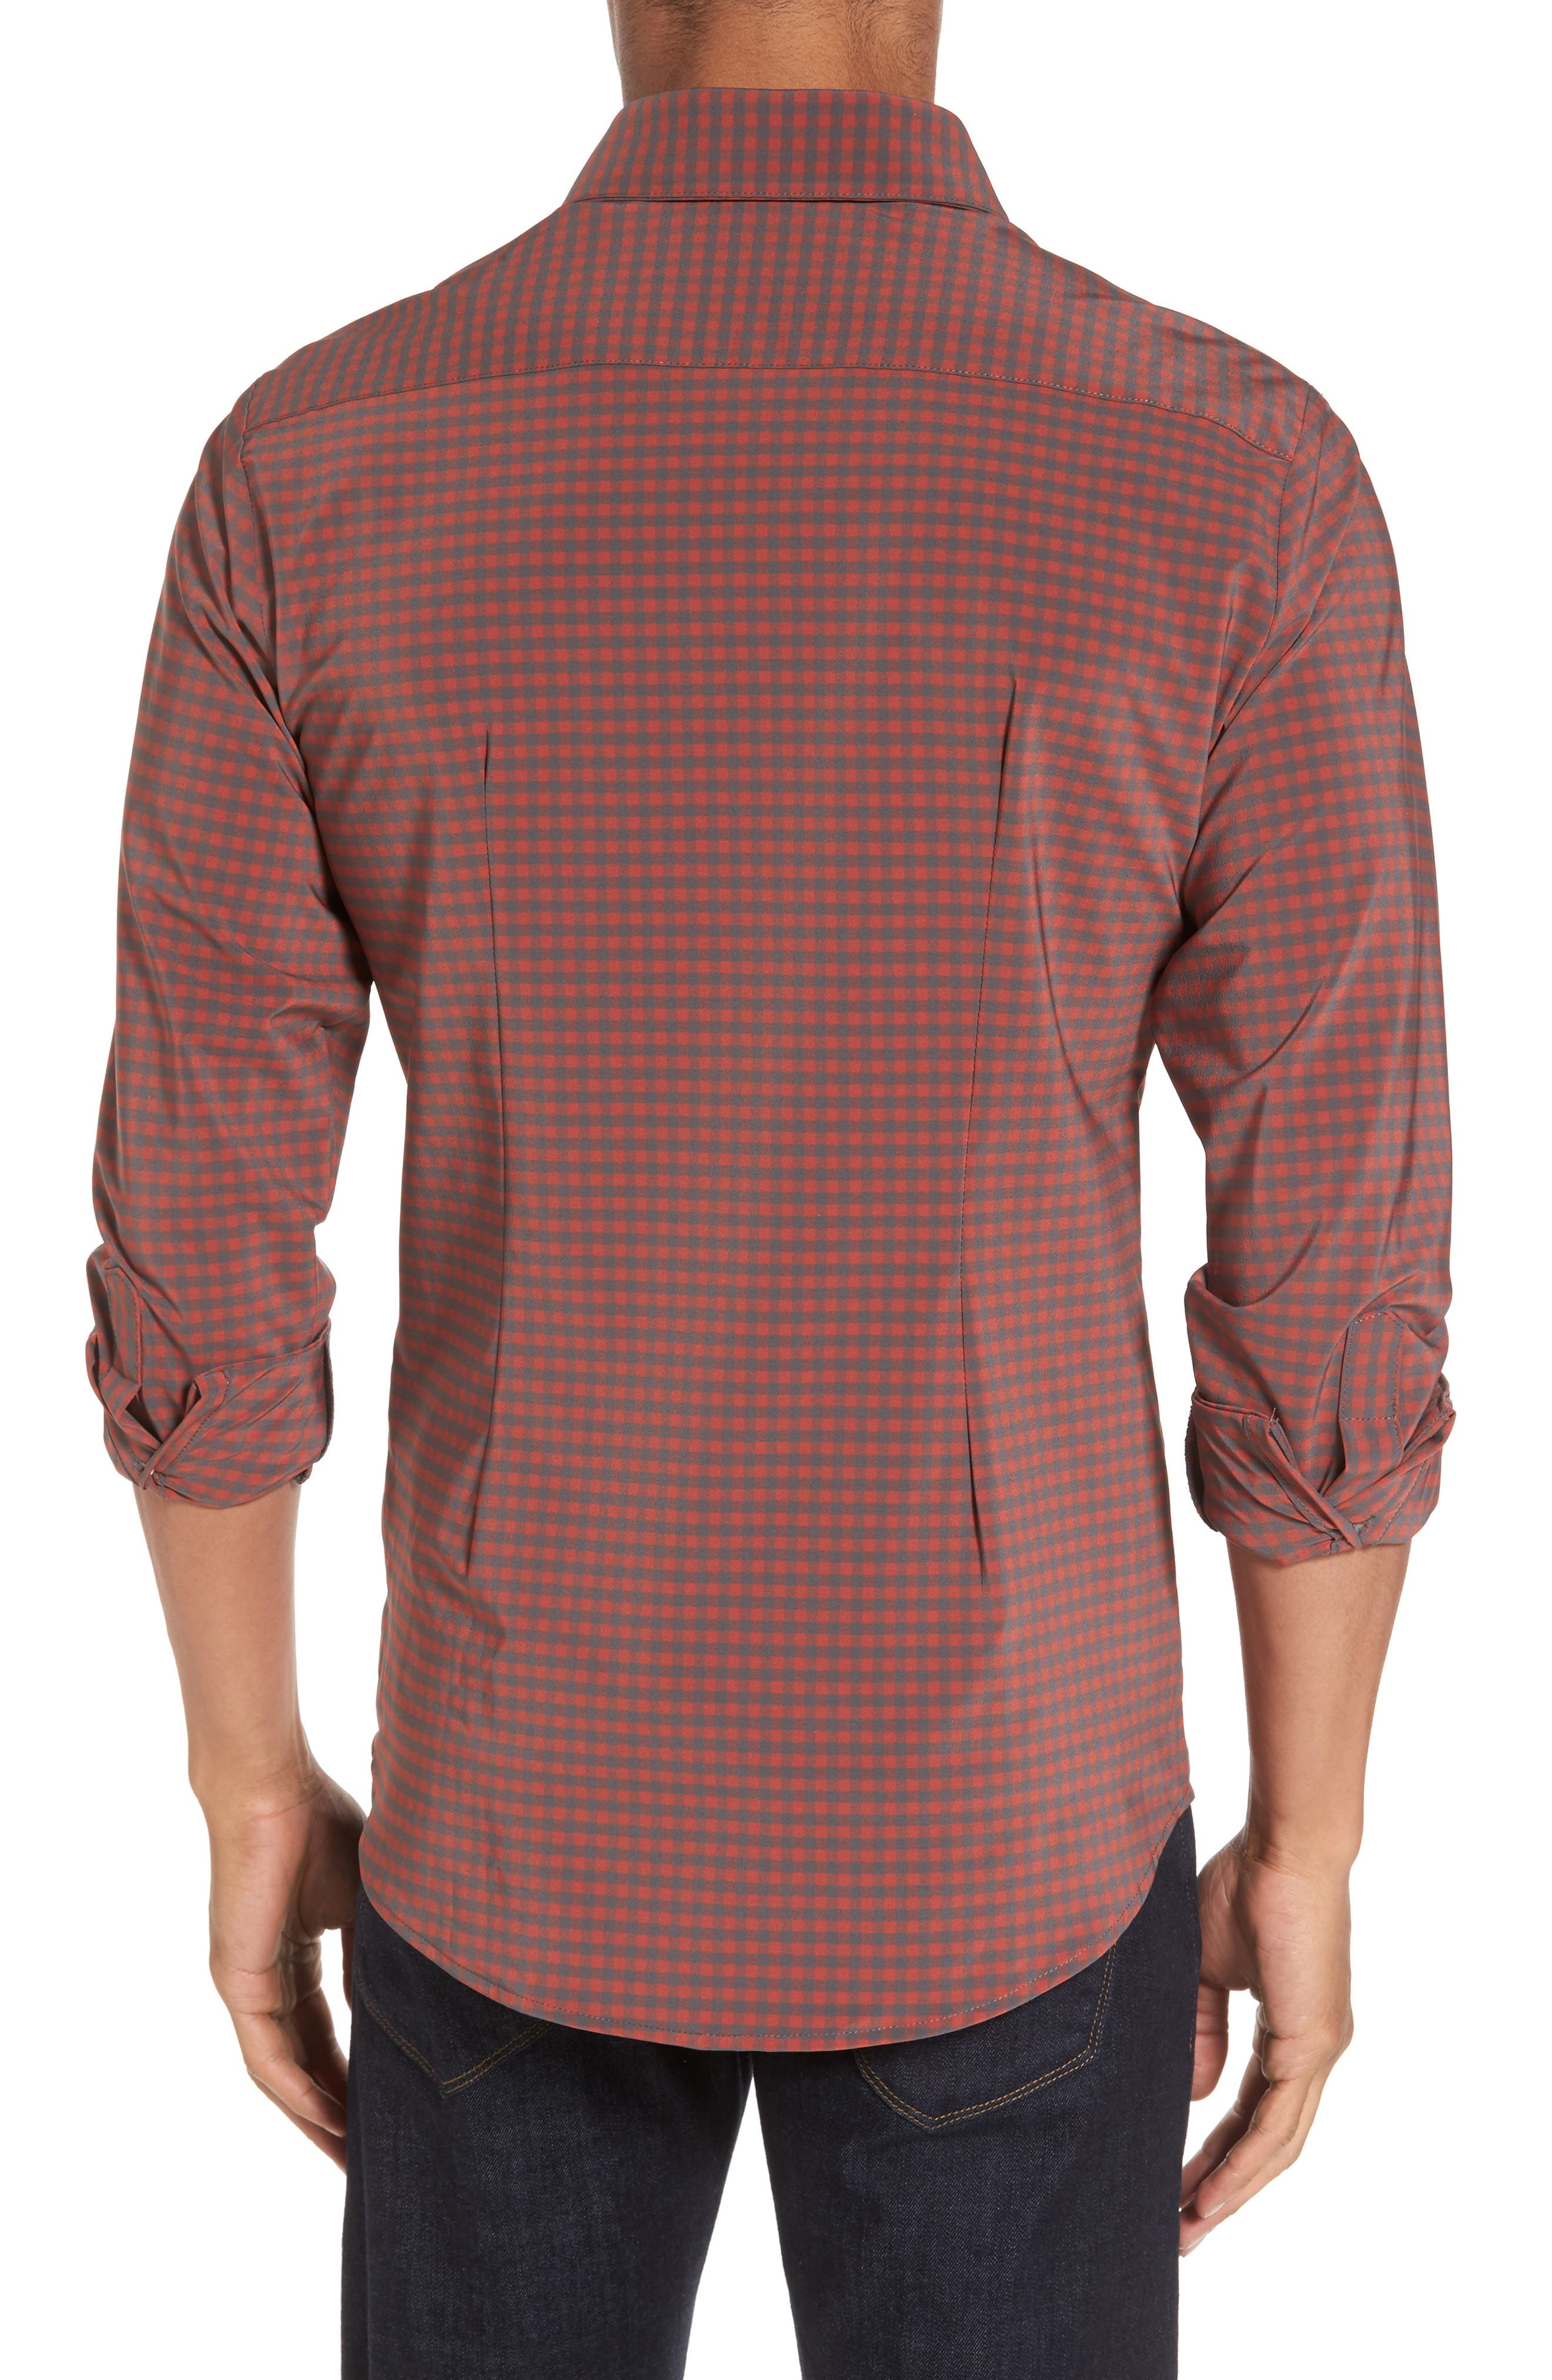 Douglas Grey & Chili Check Sport Shirt,                             Alternate thumbnail 3, color,                             Red